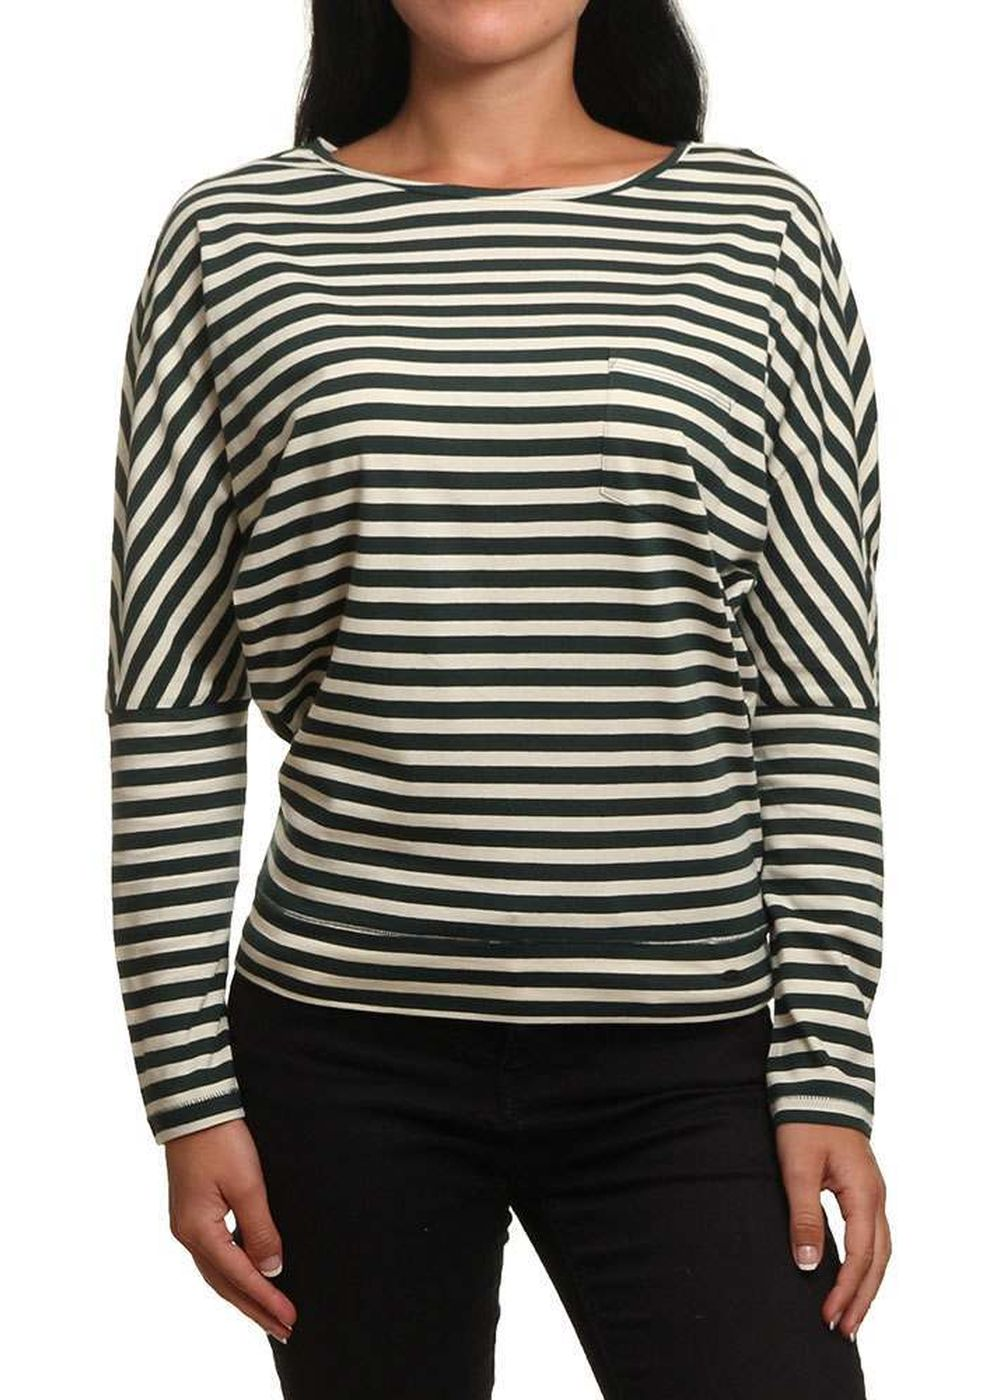 oneill-essentials-striped-ls-top-greenwhite